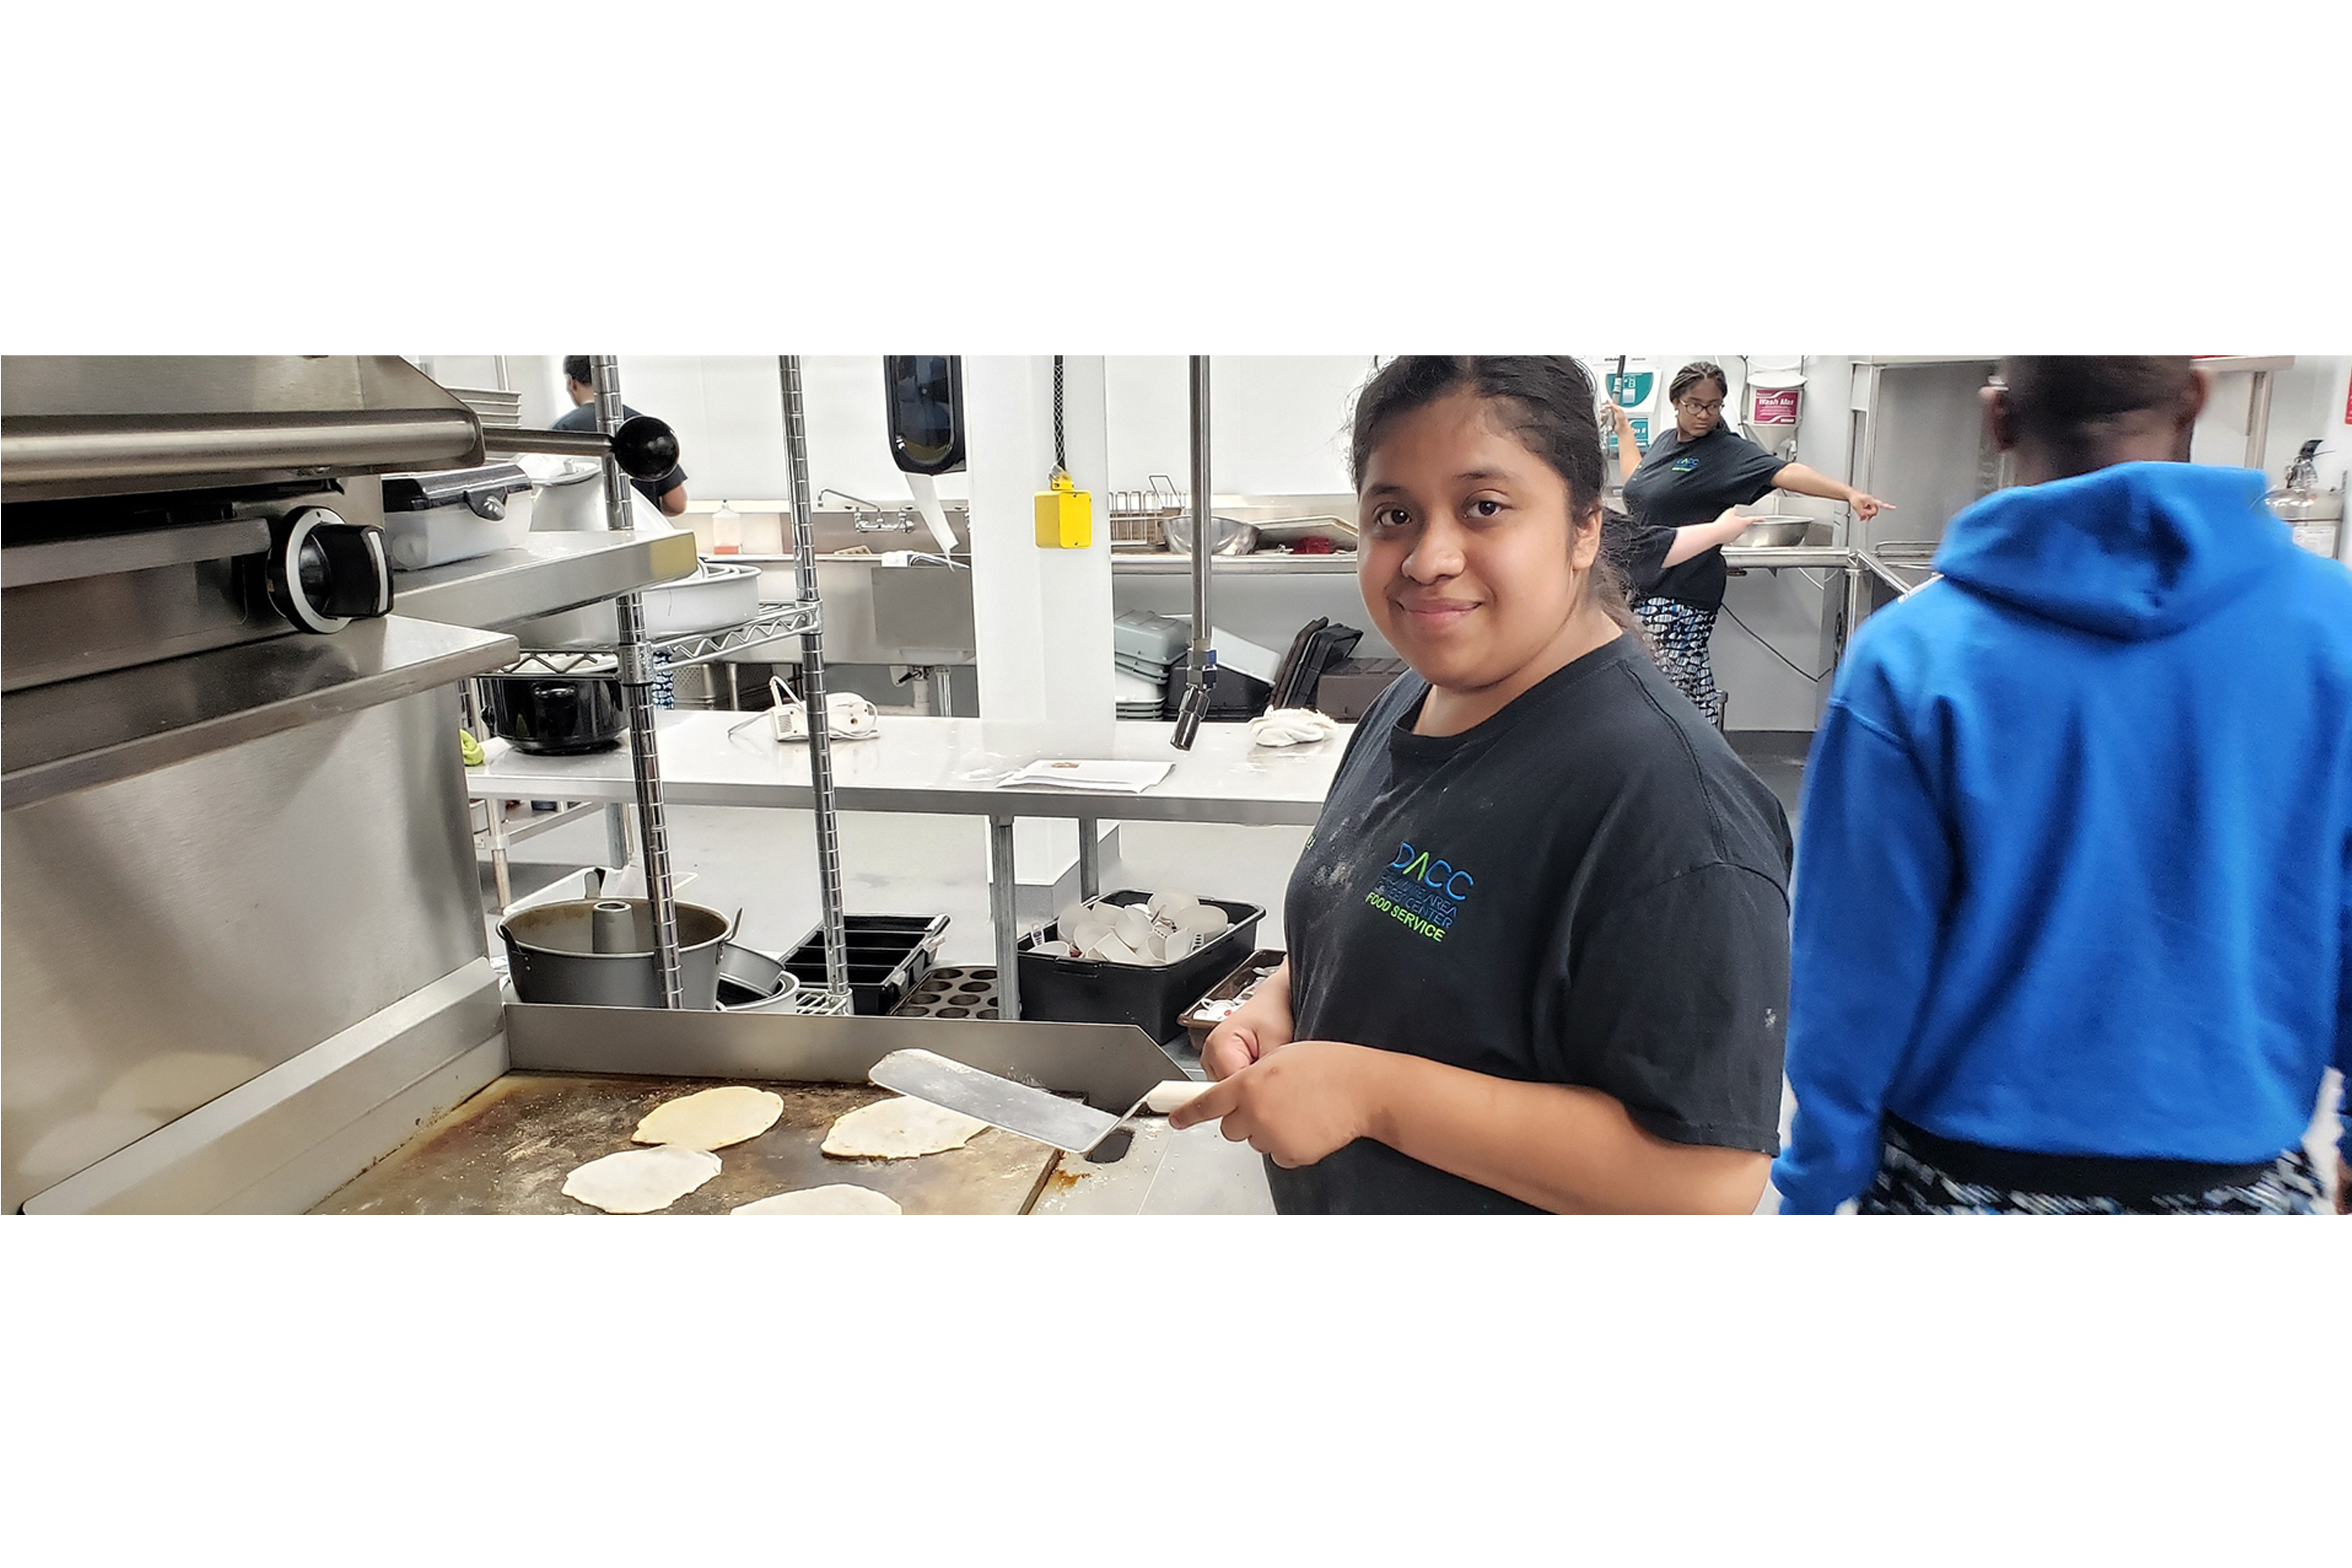 Food Service Student Cooking